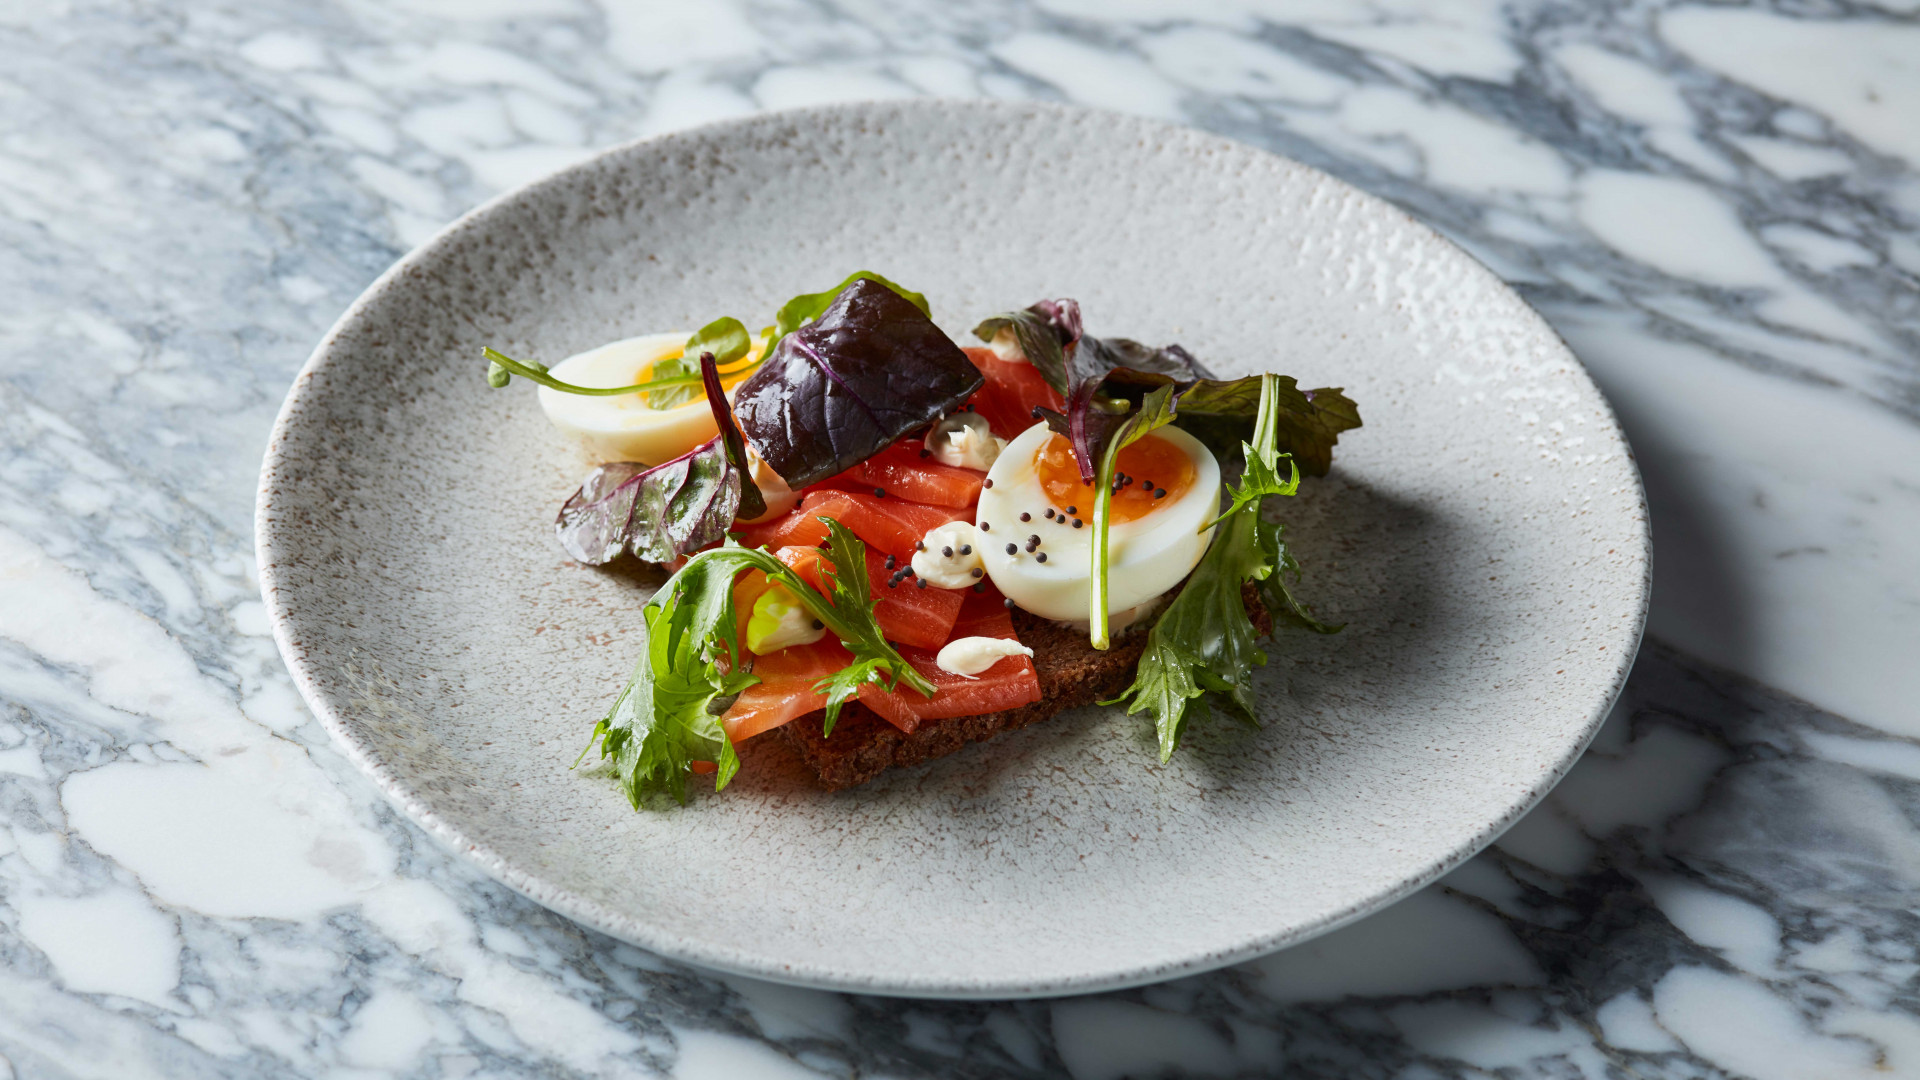 Cured salmon, soured cream, soft-boiled egg and rye at Lino, Clerkenwell